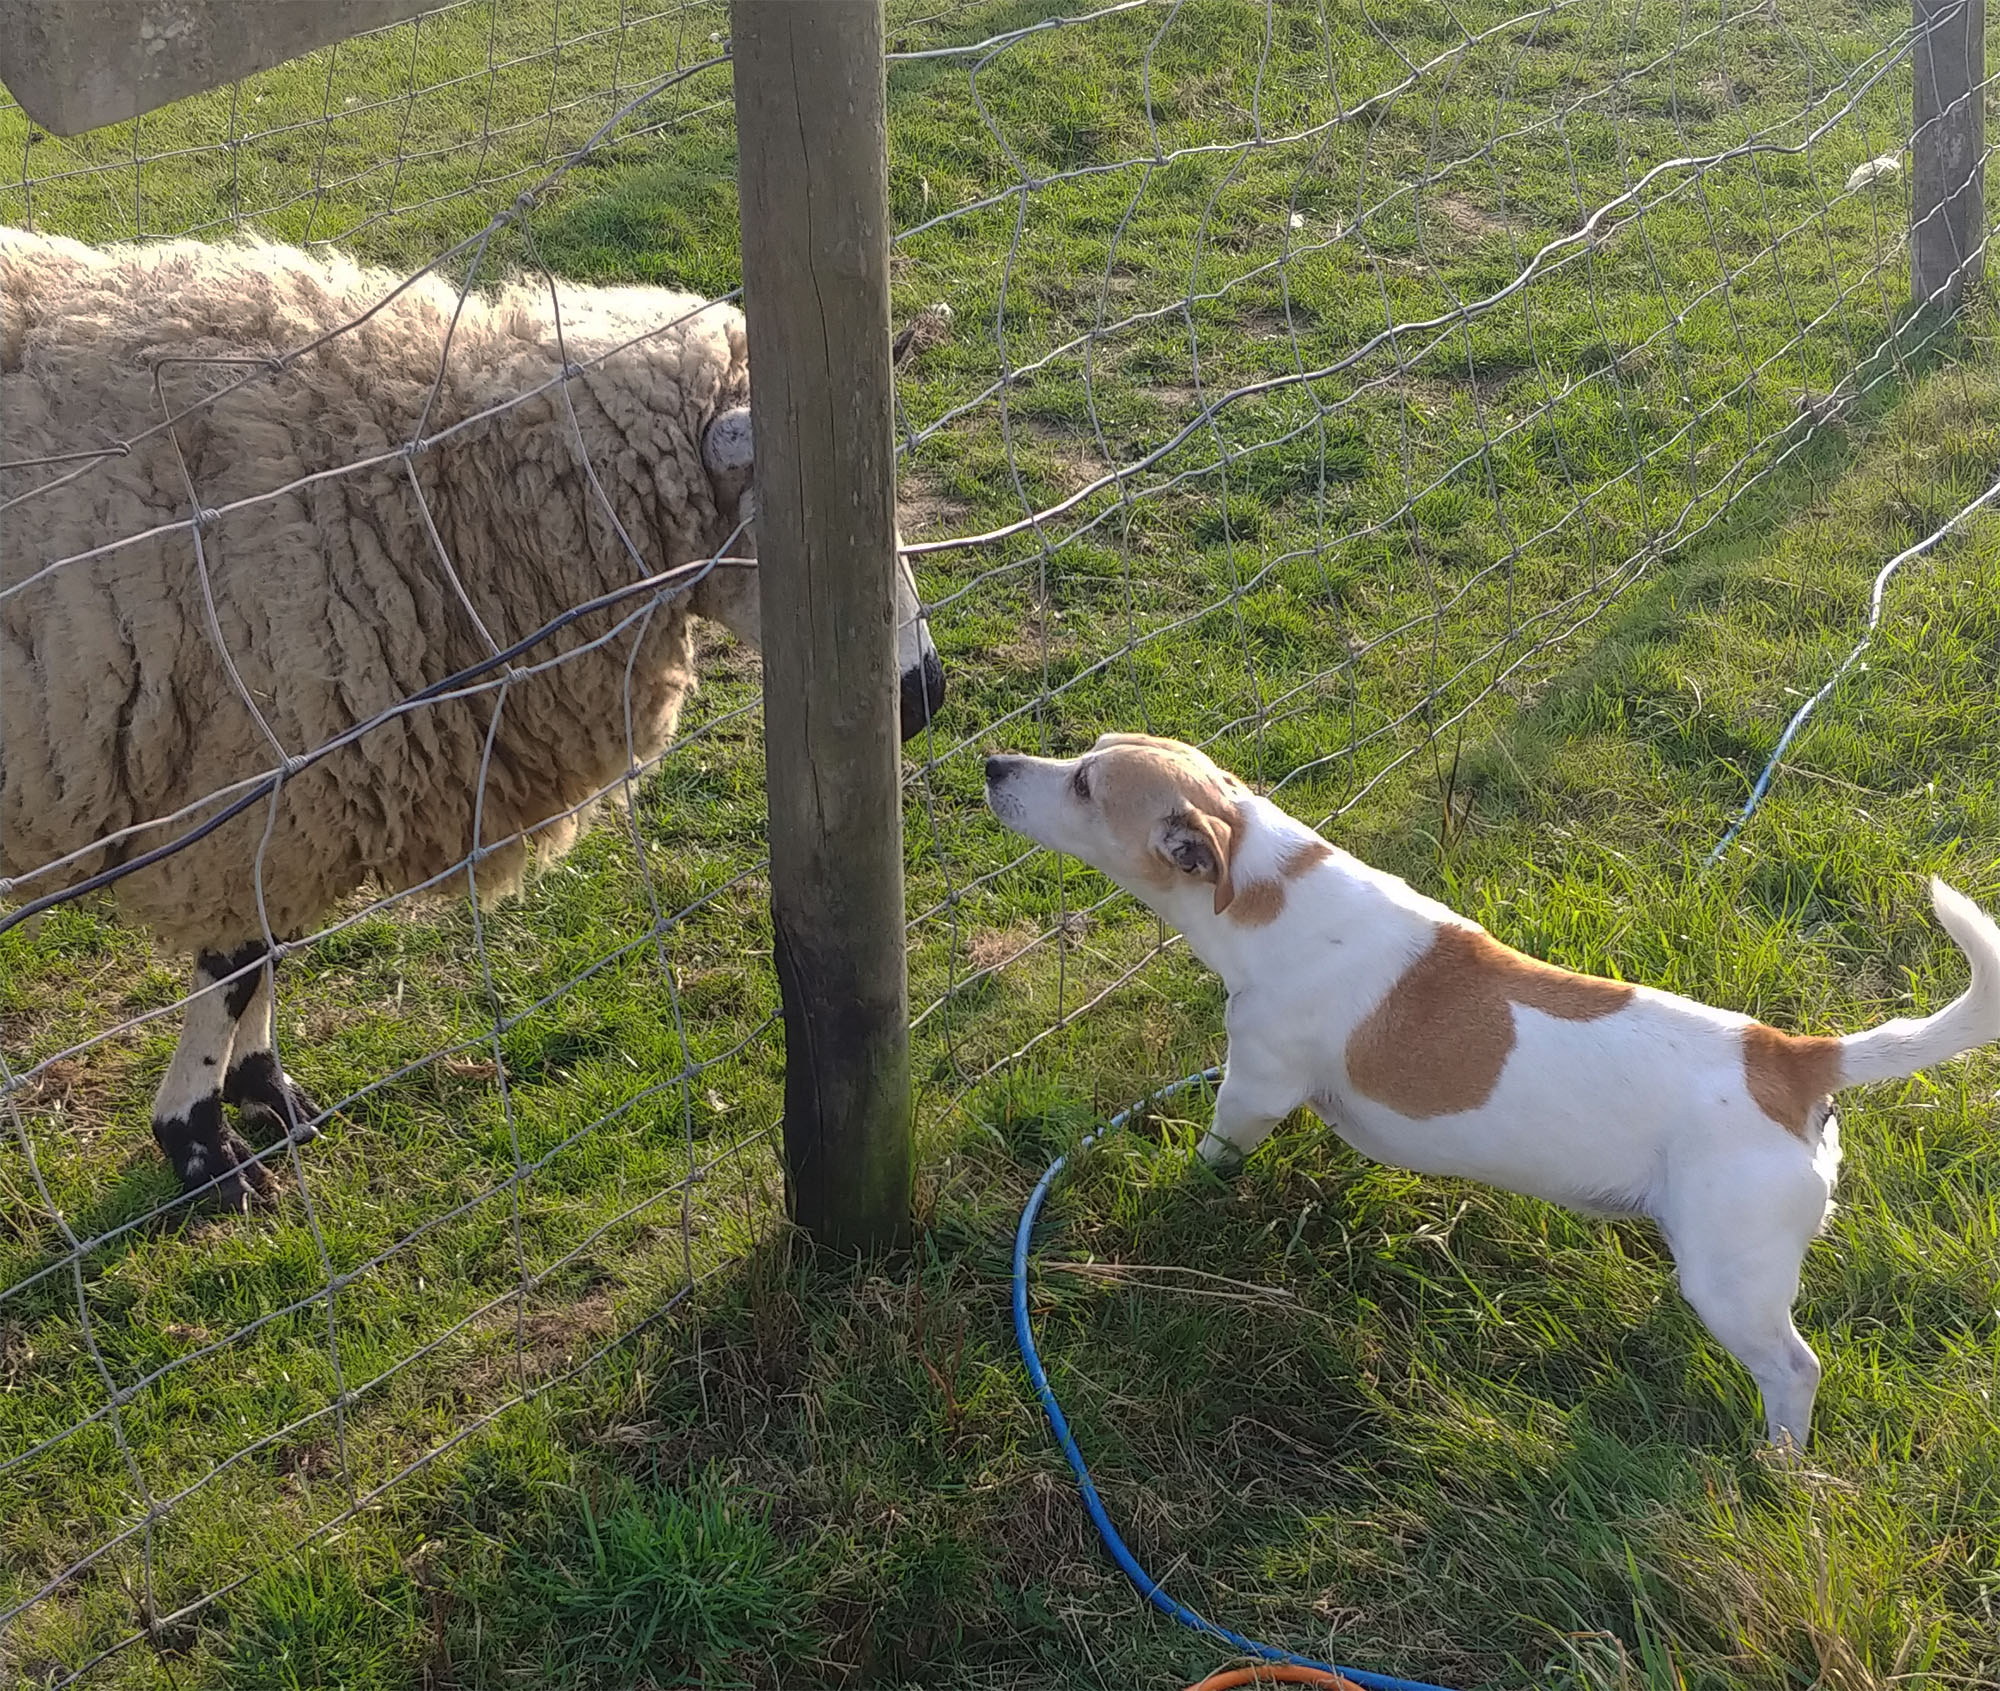 Penny versus sheep. The sheep literally couldn't care less.